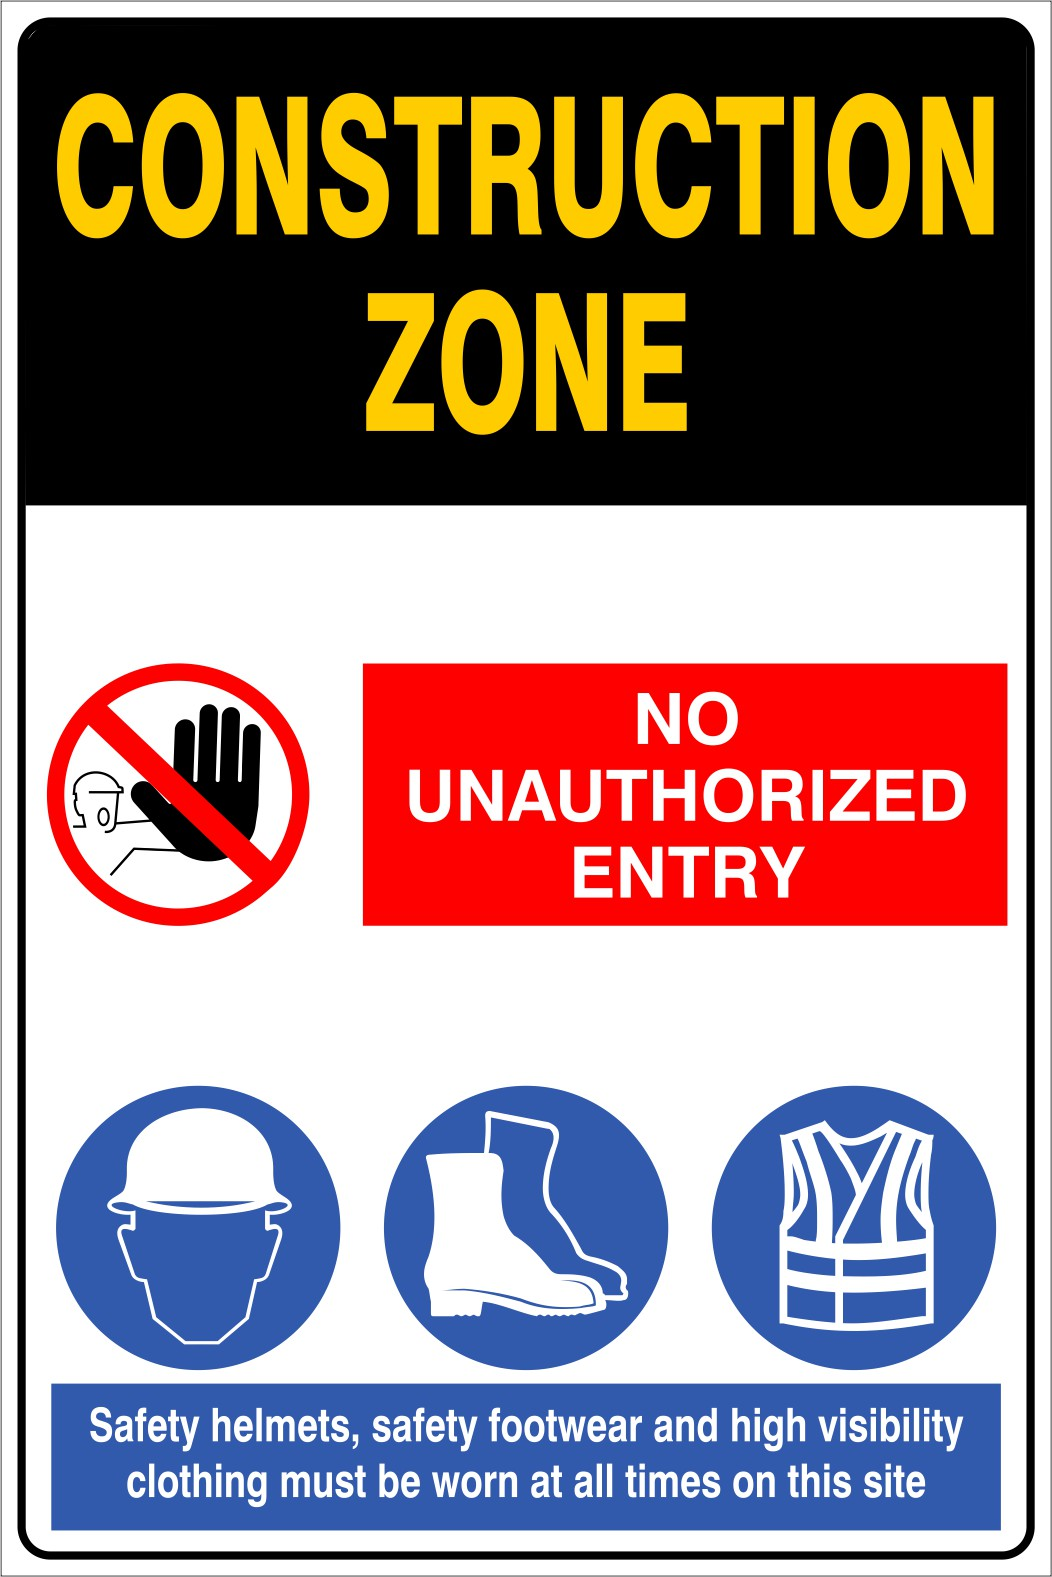 Construction Zone Safety Requirements | Mine Safety Signs